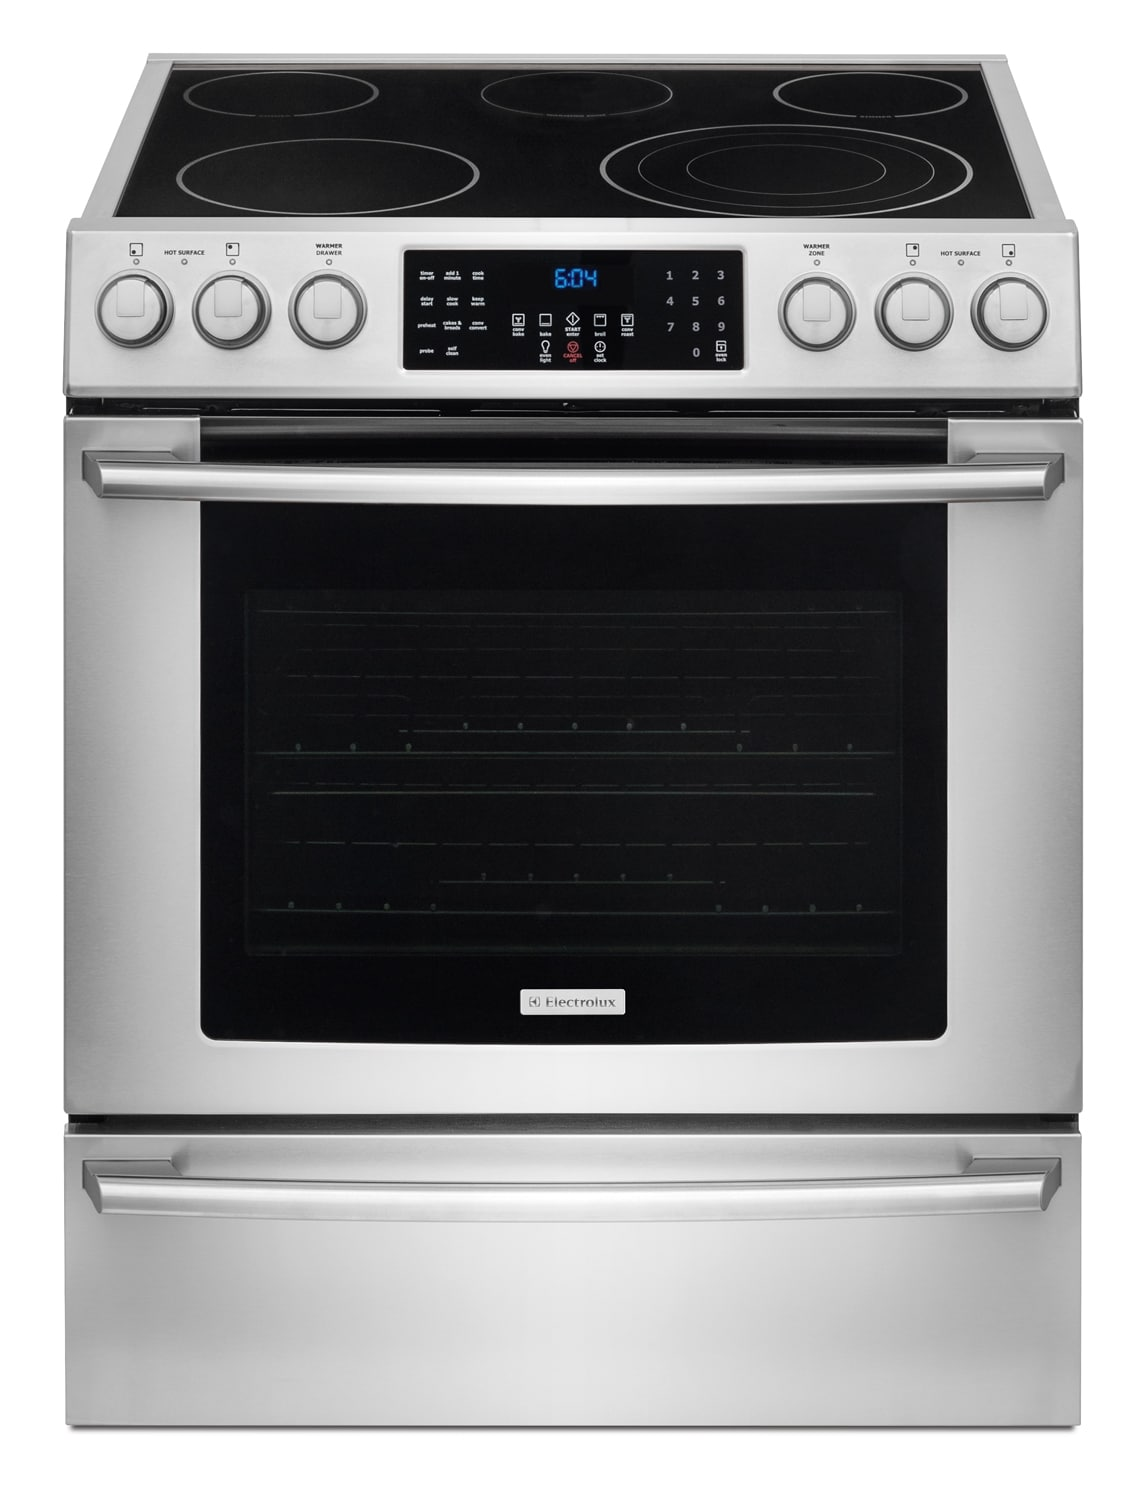 Electrolux 4.6 Cu. Ft. Front-Control Freestanding Electric Range - Stainless Steel